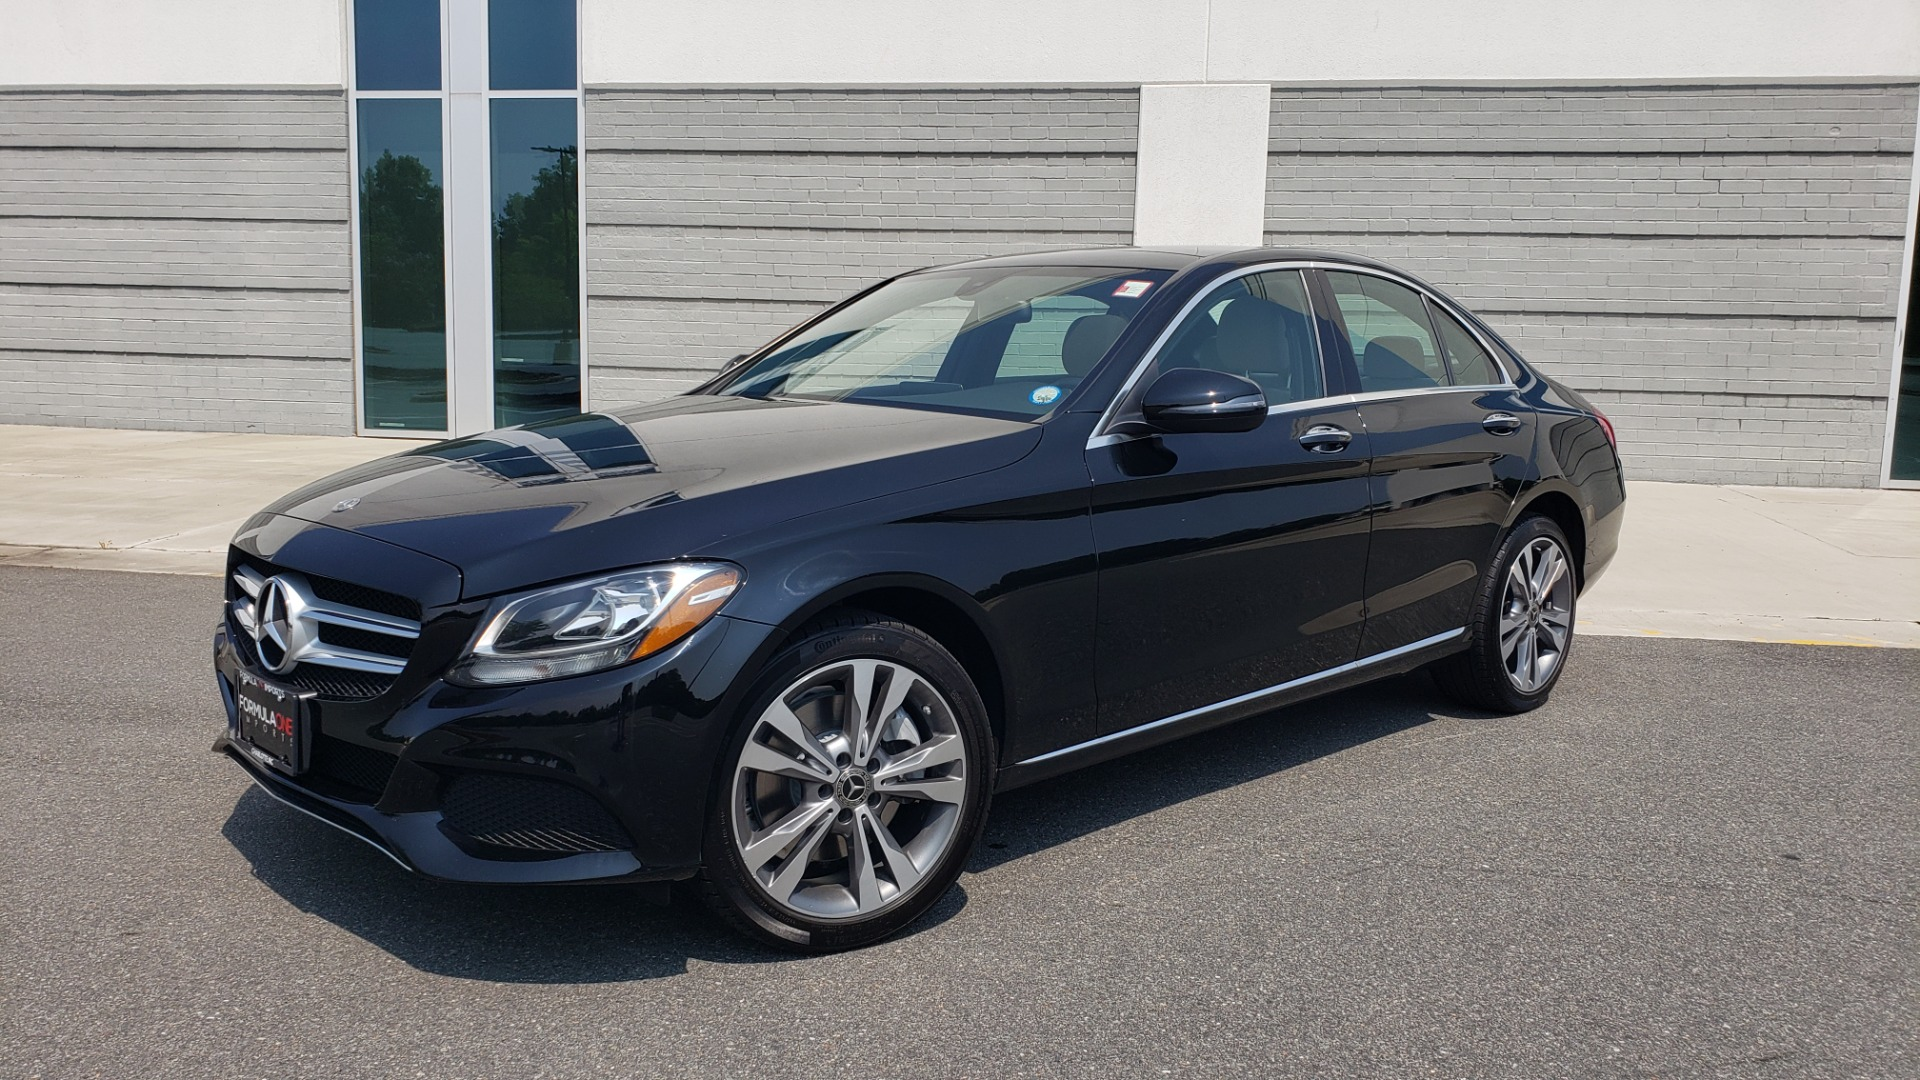 Used 2018 Mercedes-Benz C-CLASS C 300 4MATIC / PREMIUM / MULTIMEDIA / NAV / PANO-ROOF / BURMESTER for sale $30,495 at Formula Imports in Charlotte NC 28227 1